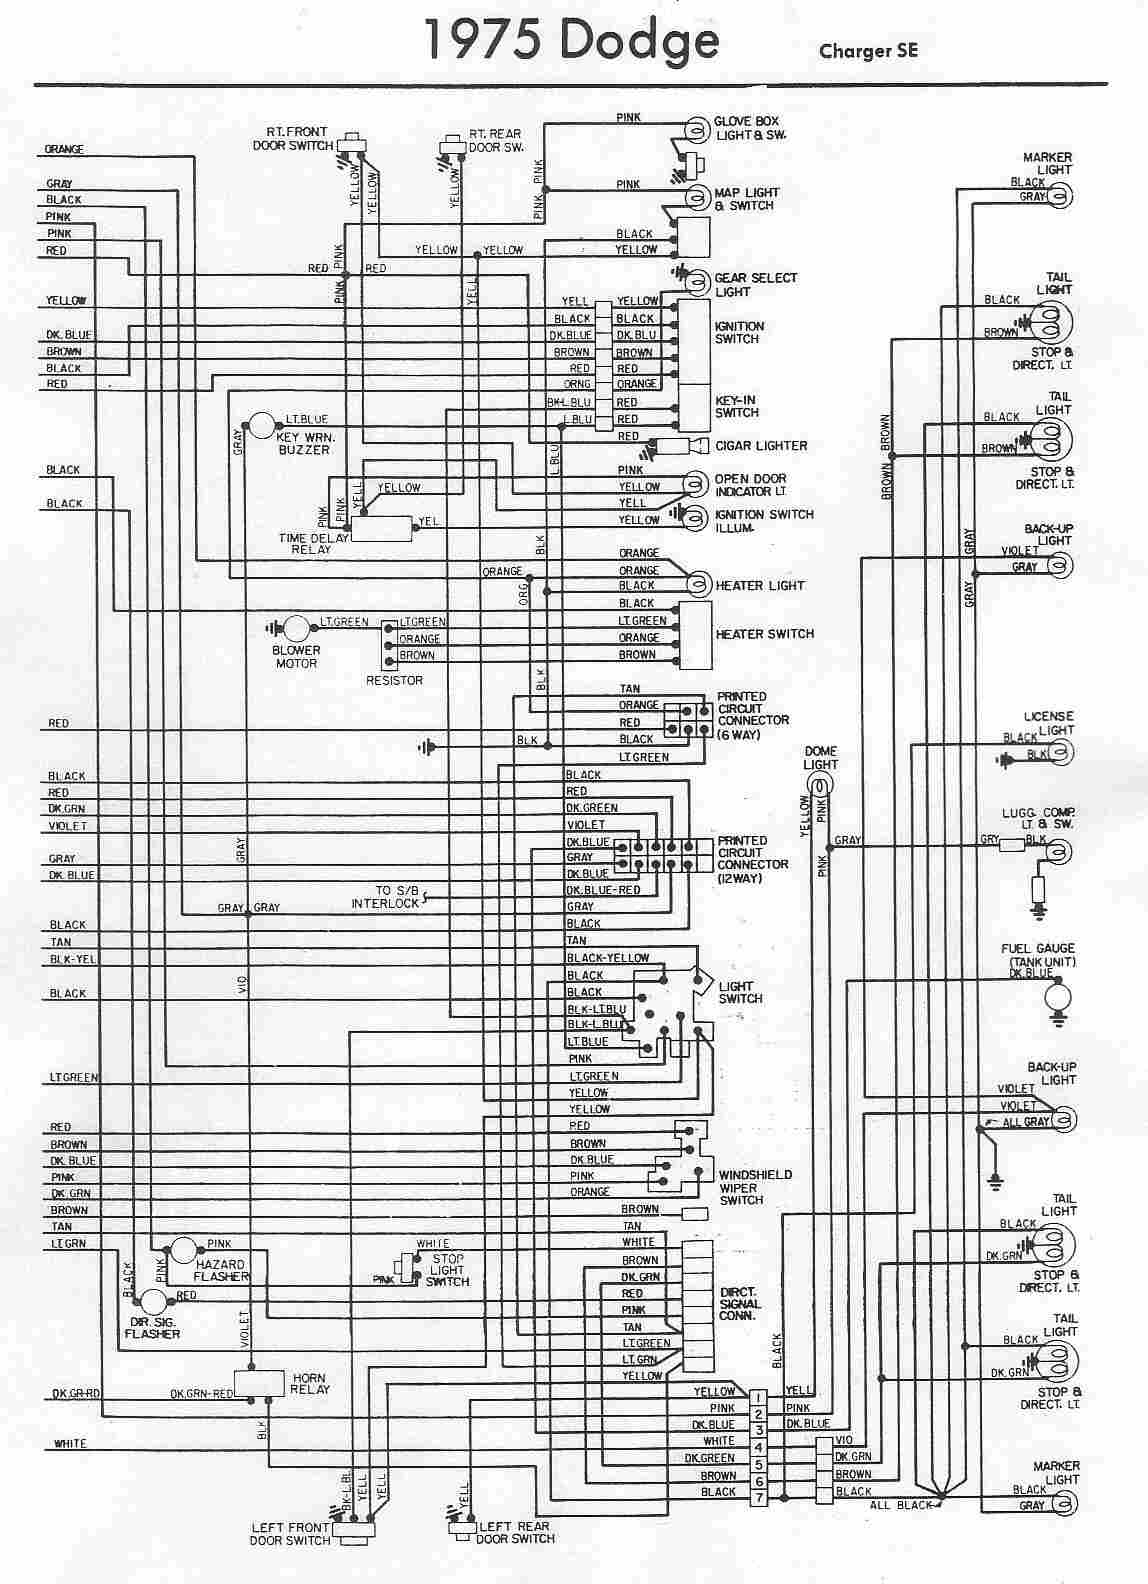 Dodge Challenger Wiring Diagram Data 1973 Chevelle Dash Furthermore 72 Volkswagen Golf 1972